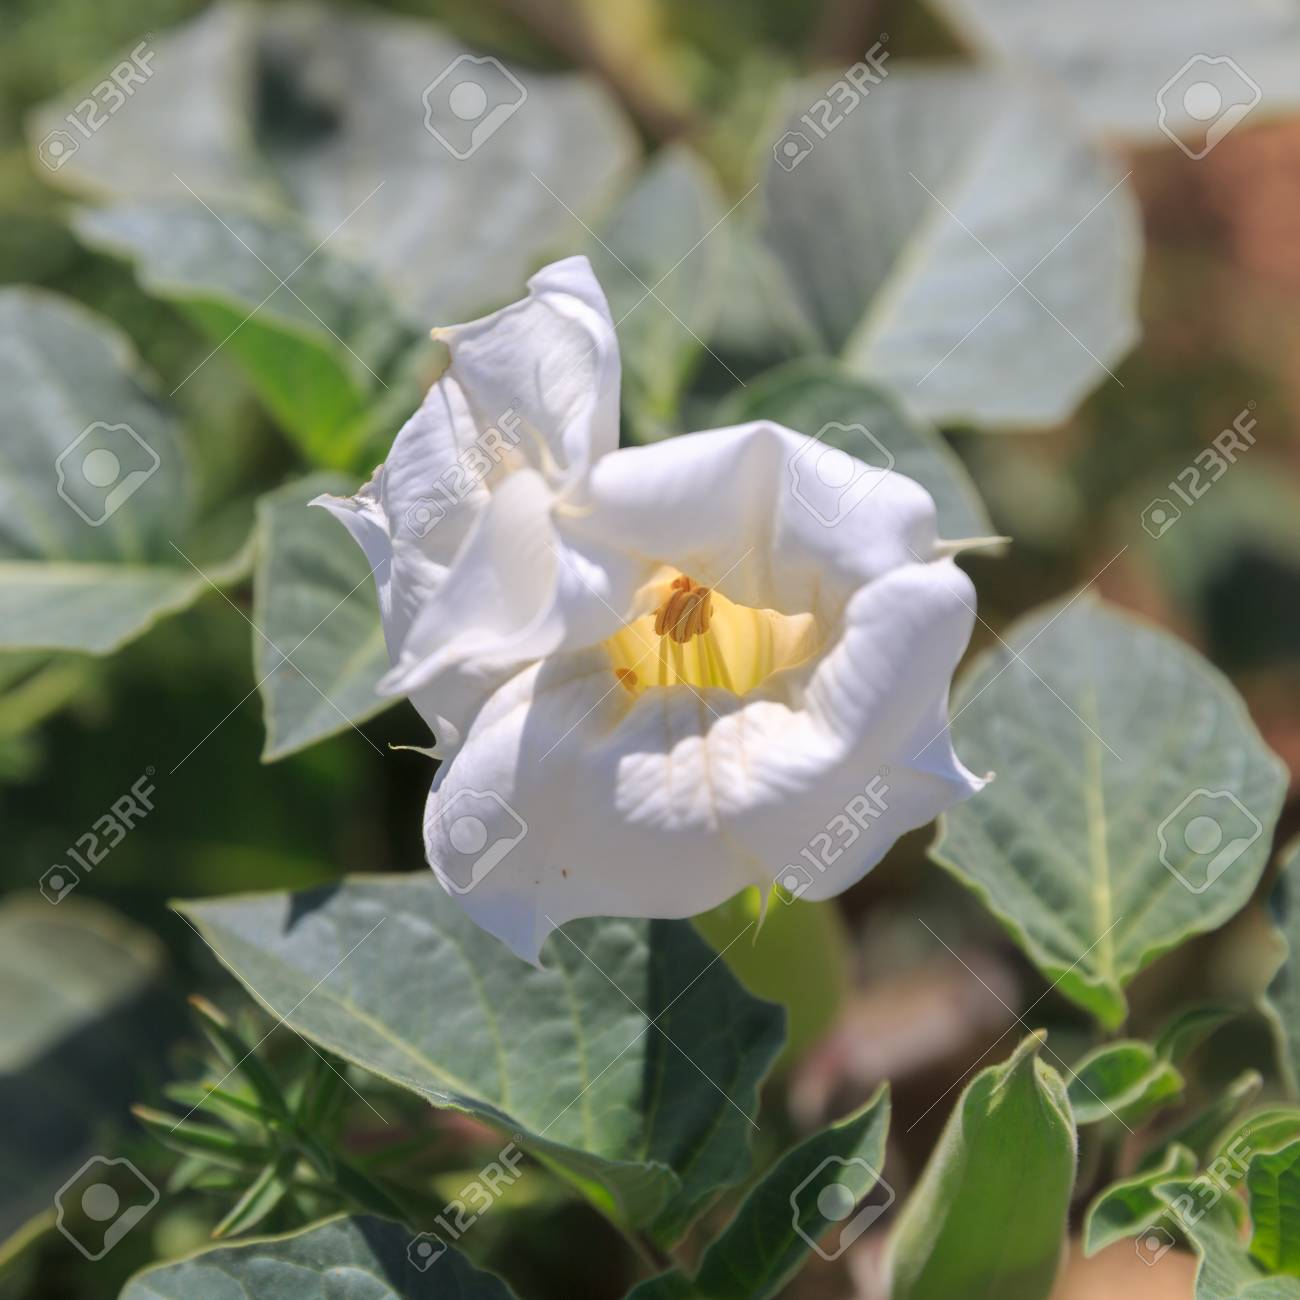 Big white poisonous datura flower on leaves background stock photo big white poisonous datura flower on leaves background stock photo 83265231 mightylinksfo